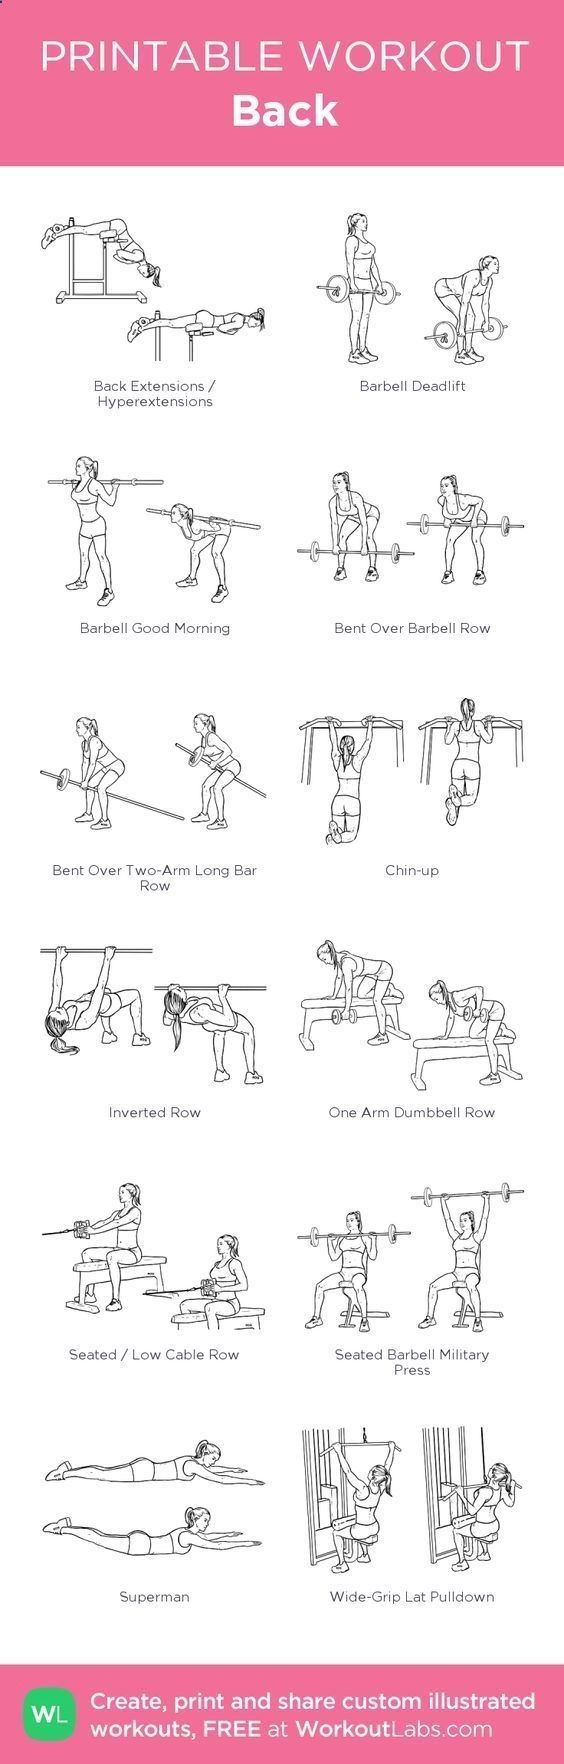 #ABS #Gain #Great #langhantel fitness #loss #muscle -  #ABS #Gain #Great #langhantel fitness #loss #...